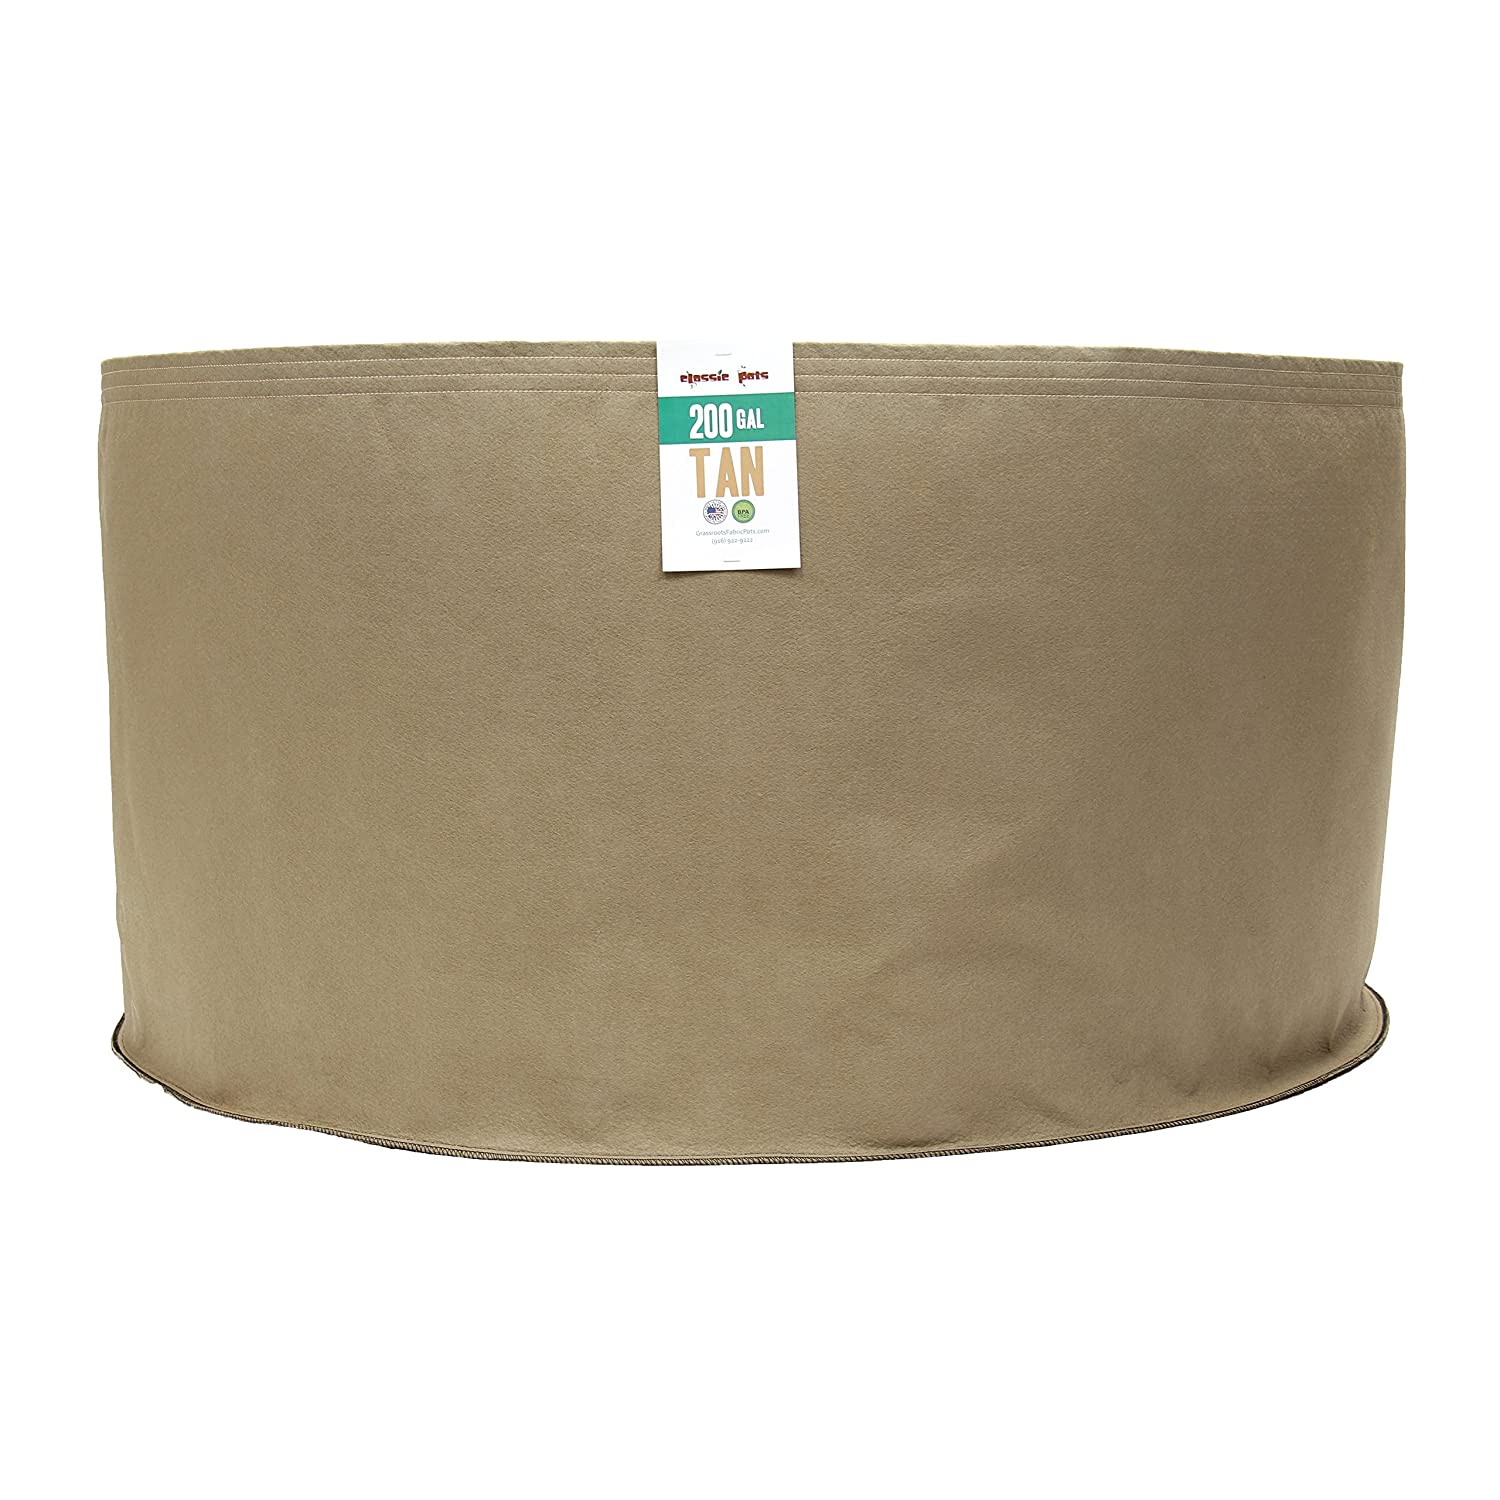 (50 Pack) 200 Gallon Tan Grassroots Fabric Pot - Grow Pot and Aeration Container